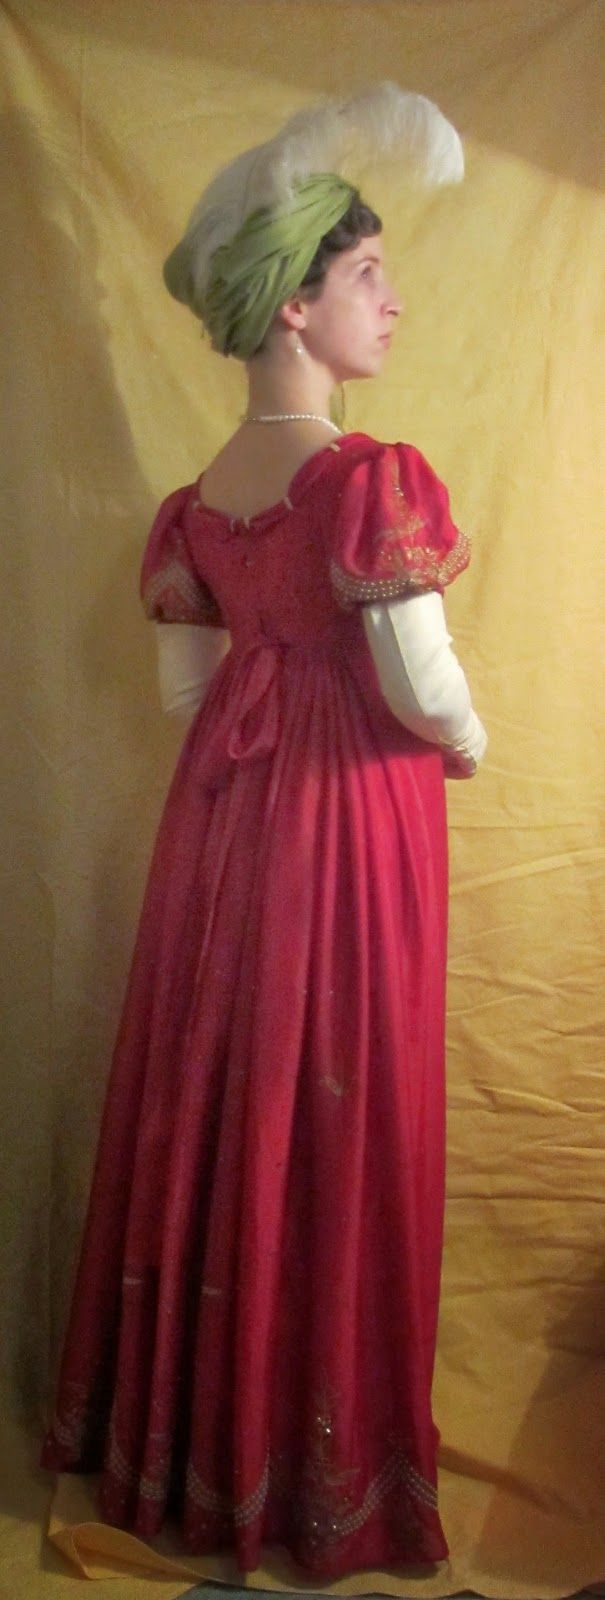 Red Regency ball gown made from a sari (also good general costume blog)